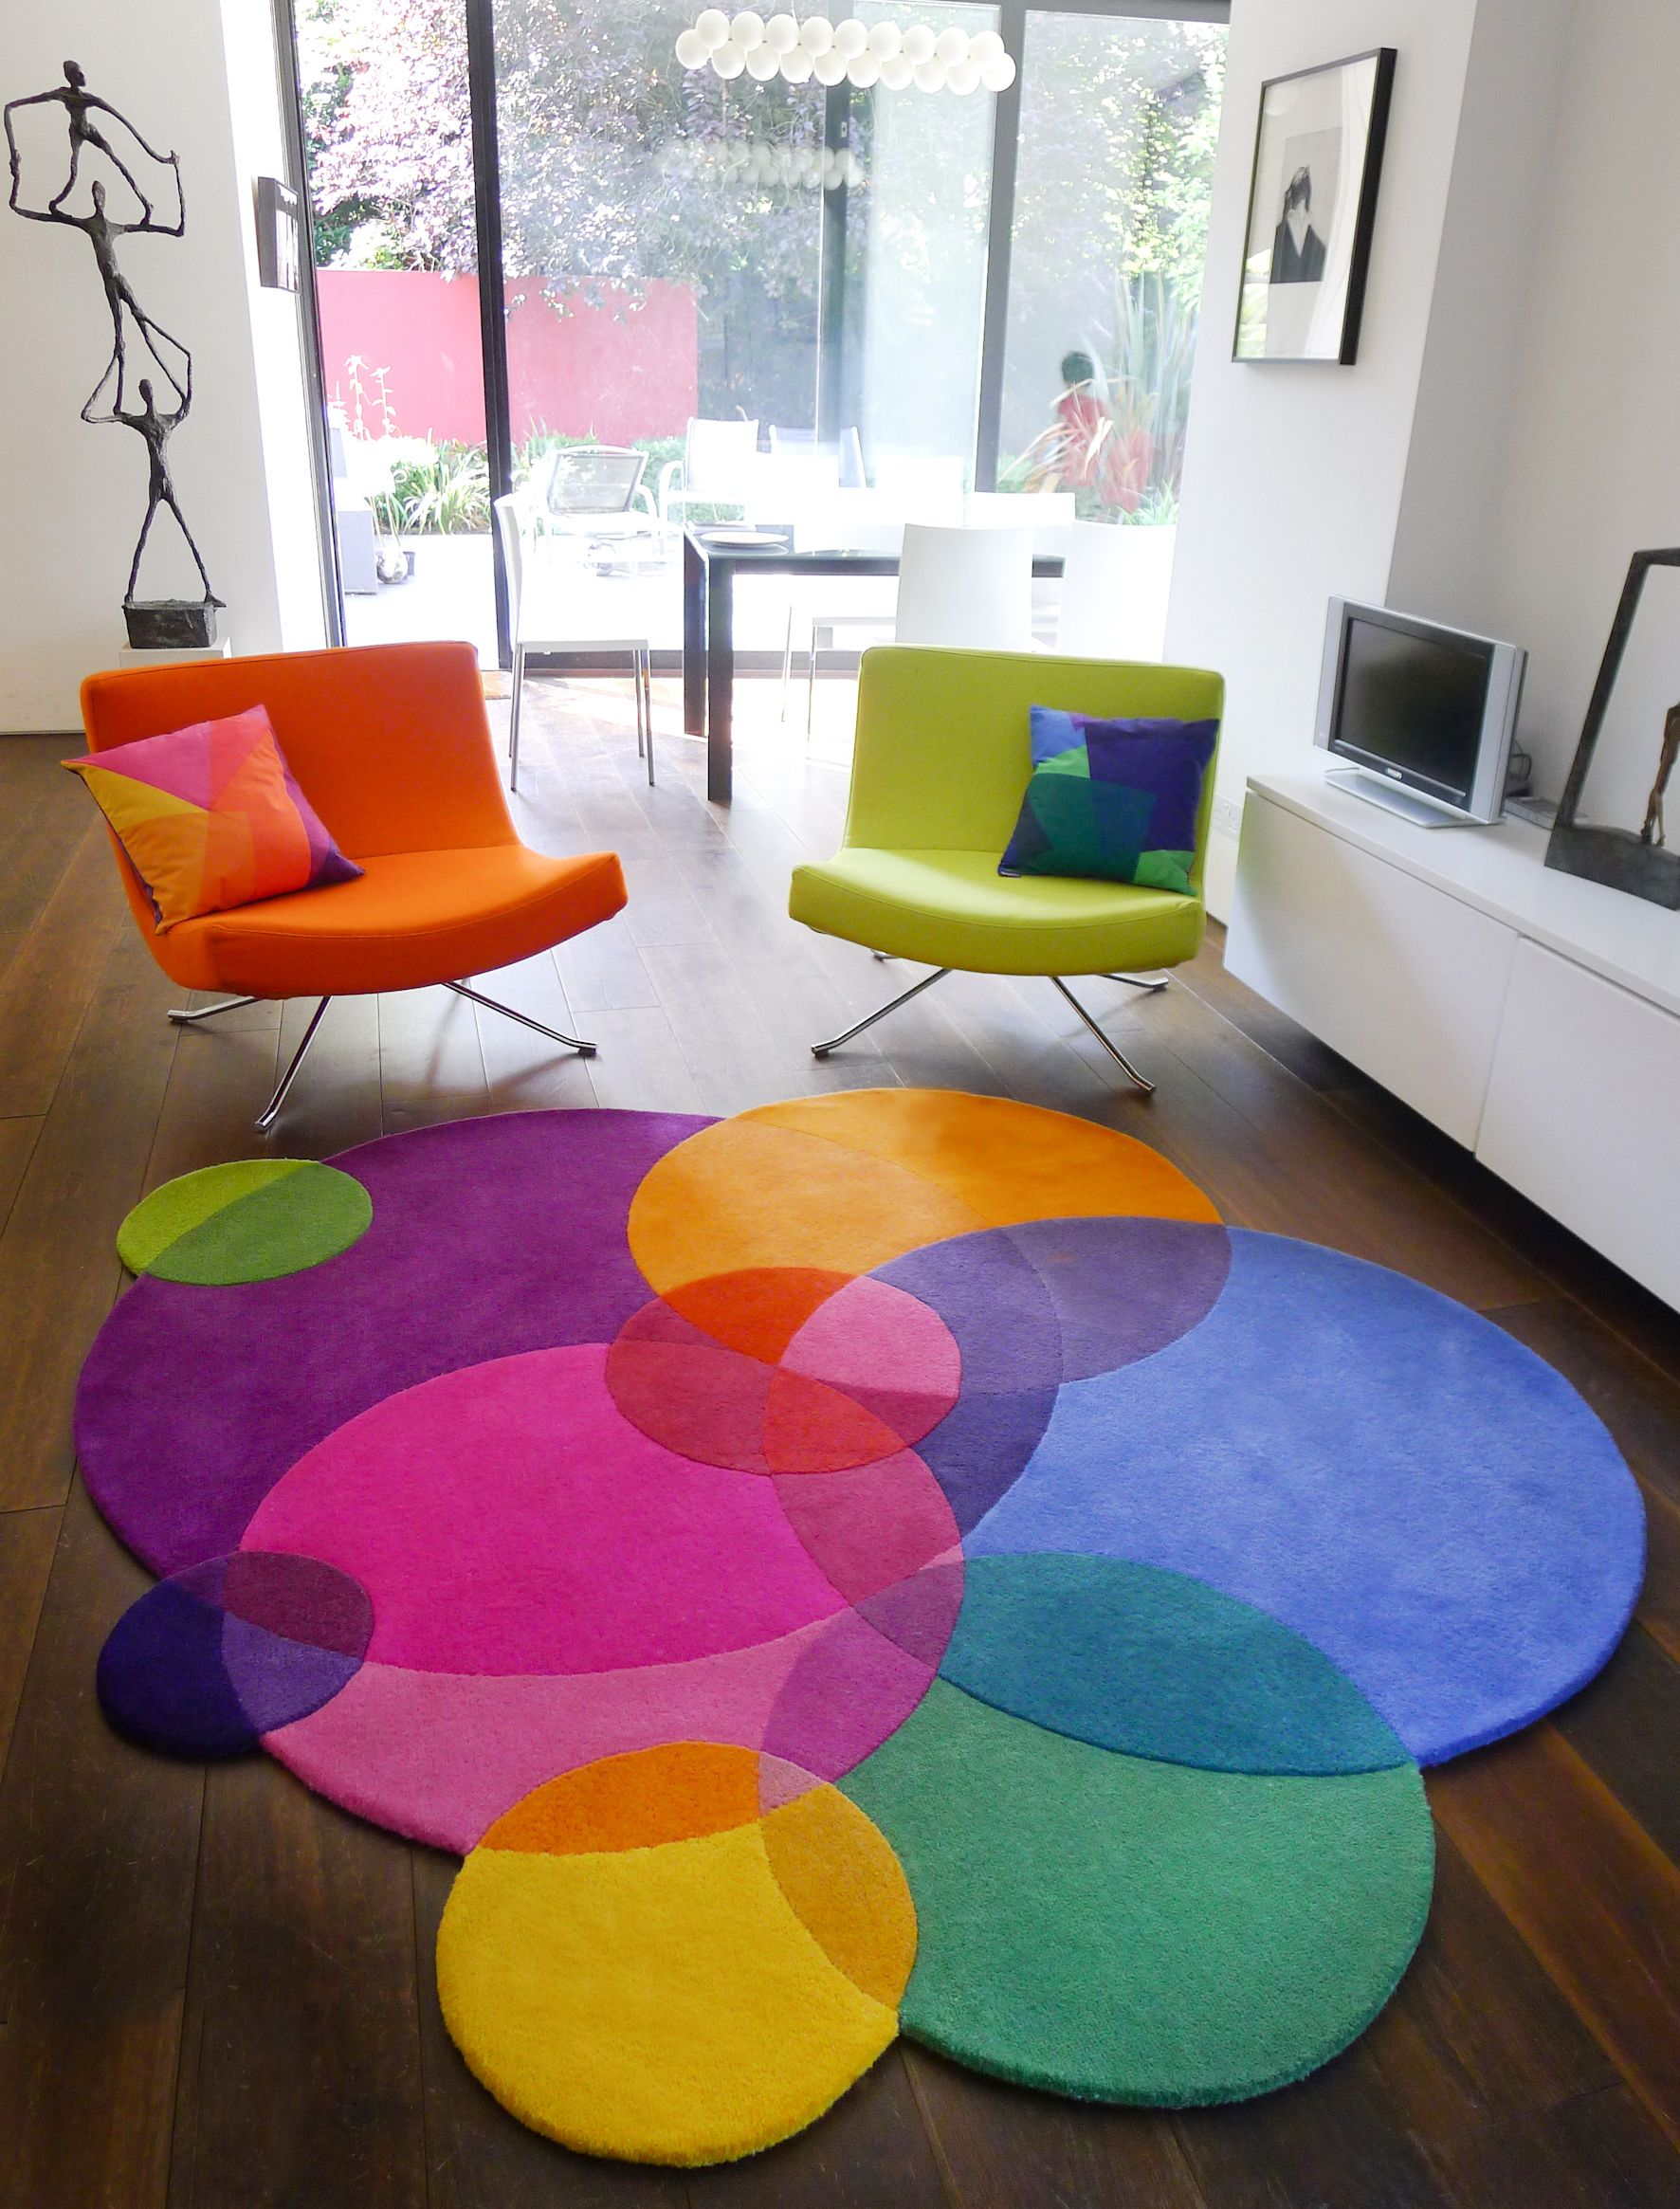 Love The Colors And Style Of This Rug Bubbles Square Contemporary Modern Area Rugs By Sonya Winner